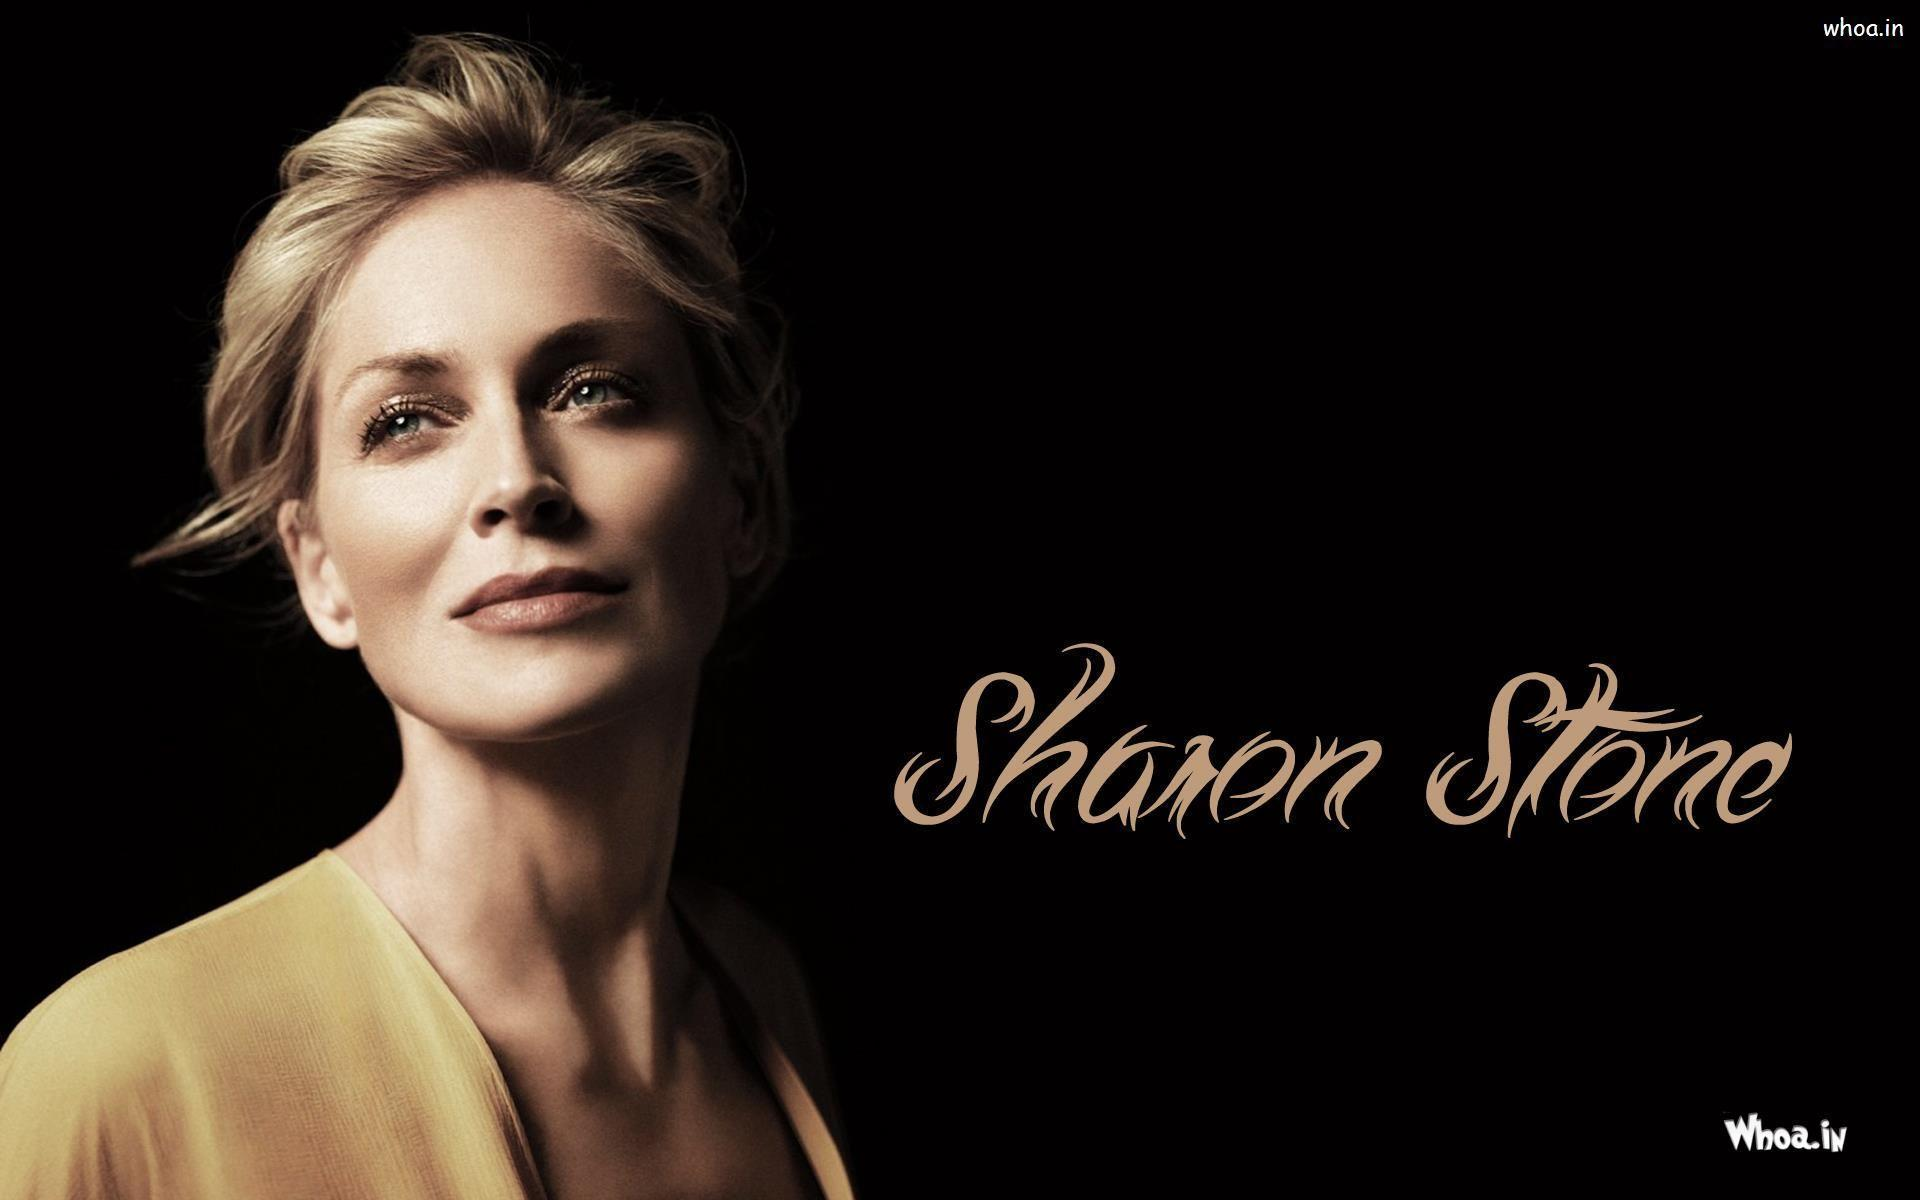 Sharon Stone Face Close Up Wallpapers HD